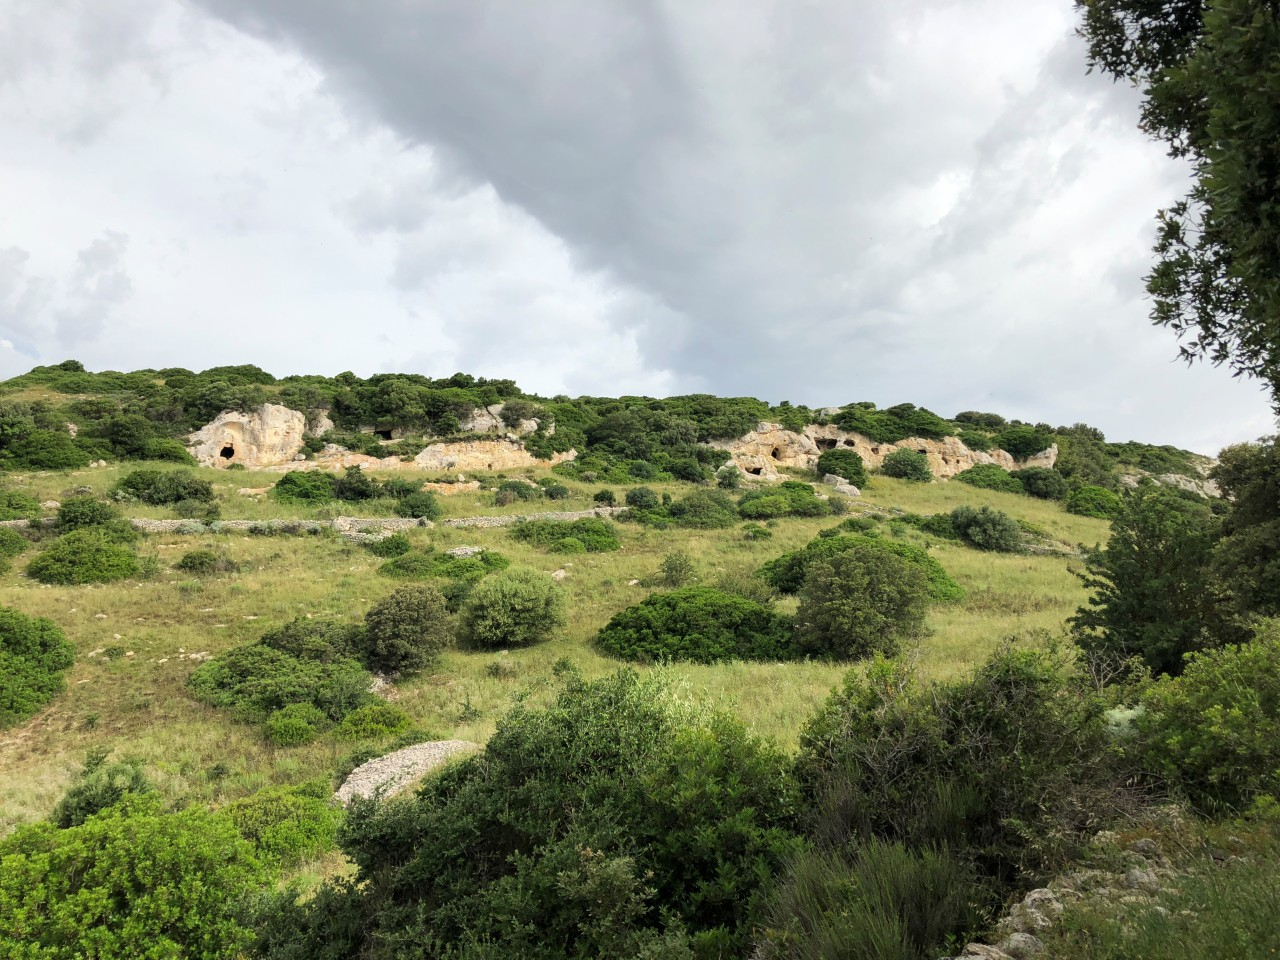 Discovering the Neolithic underworld: archaeological fieldwork in Sardinia